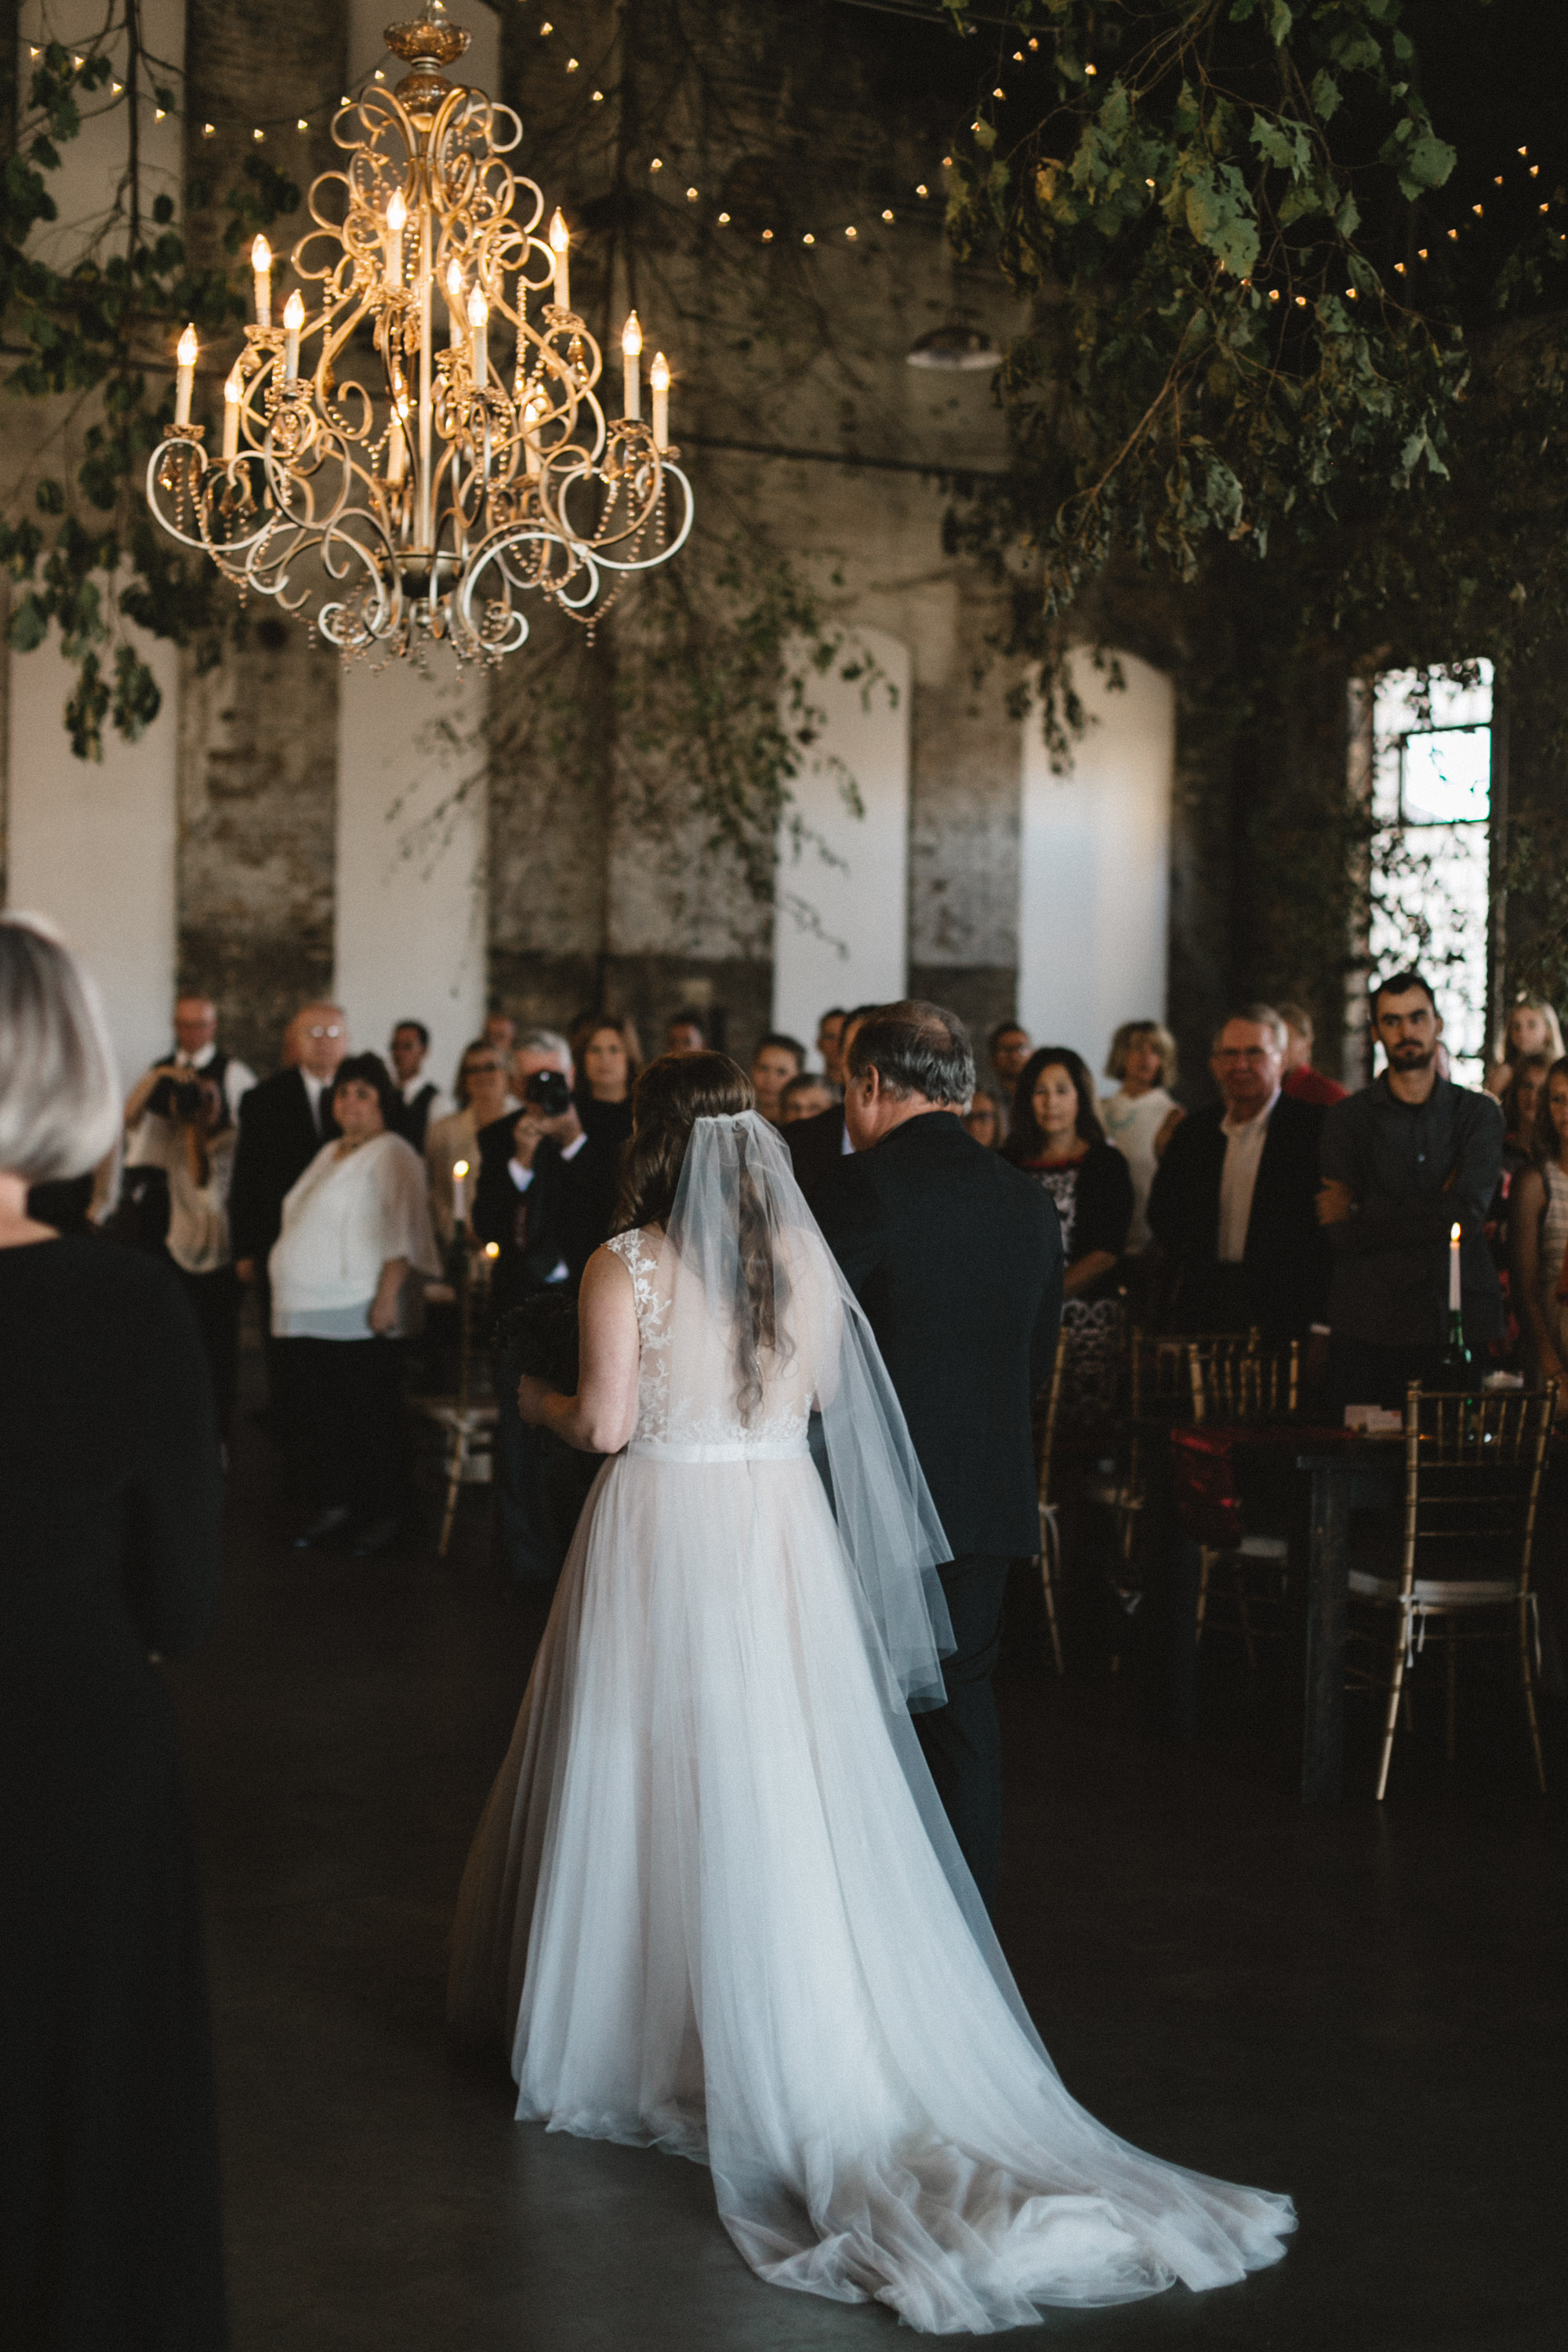 Epic warehouse wedding at the NP Event Space, photography by Britt DeZeeuw